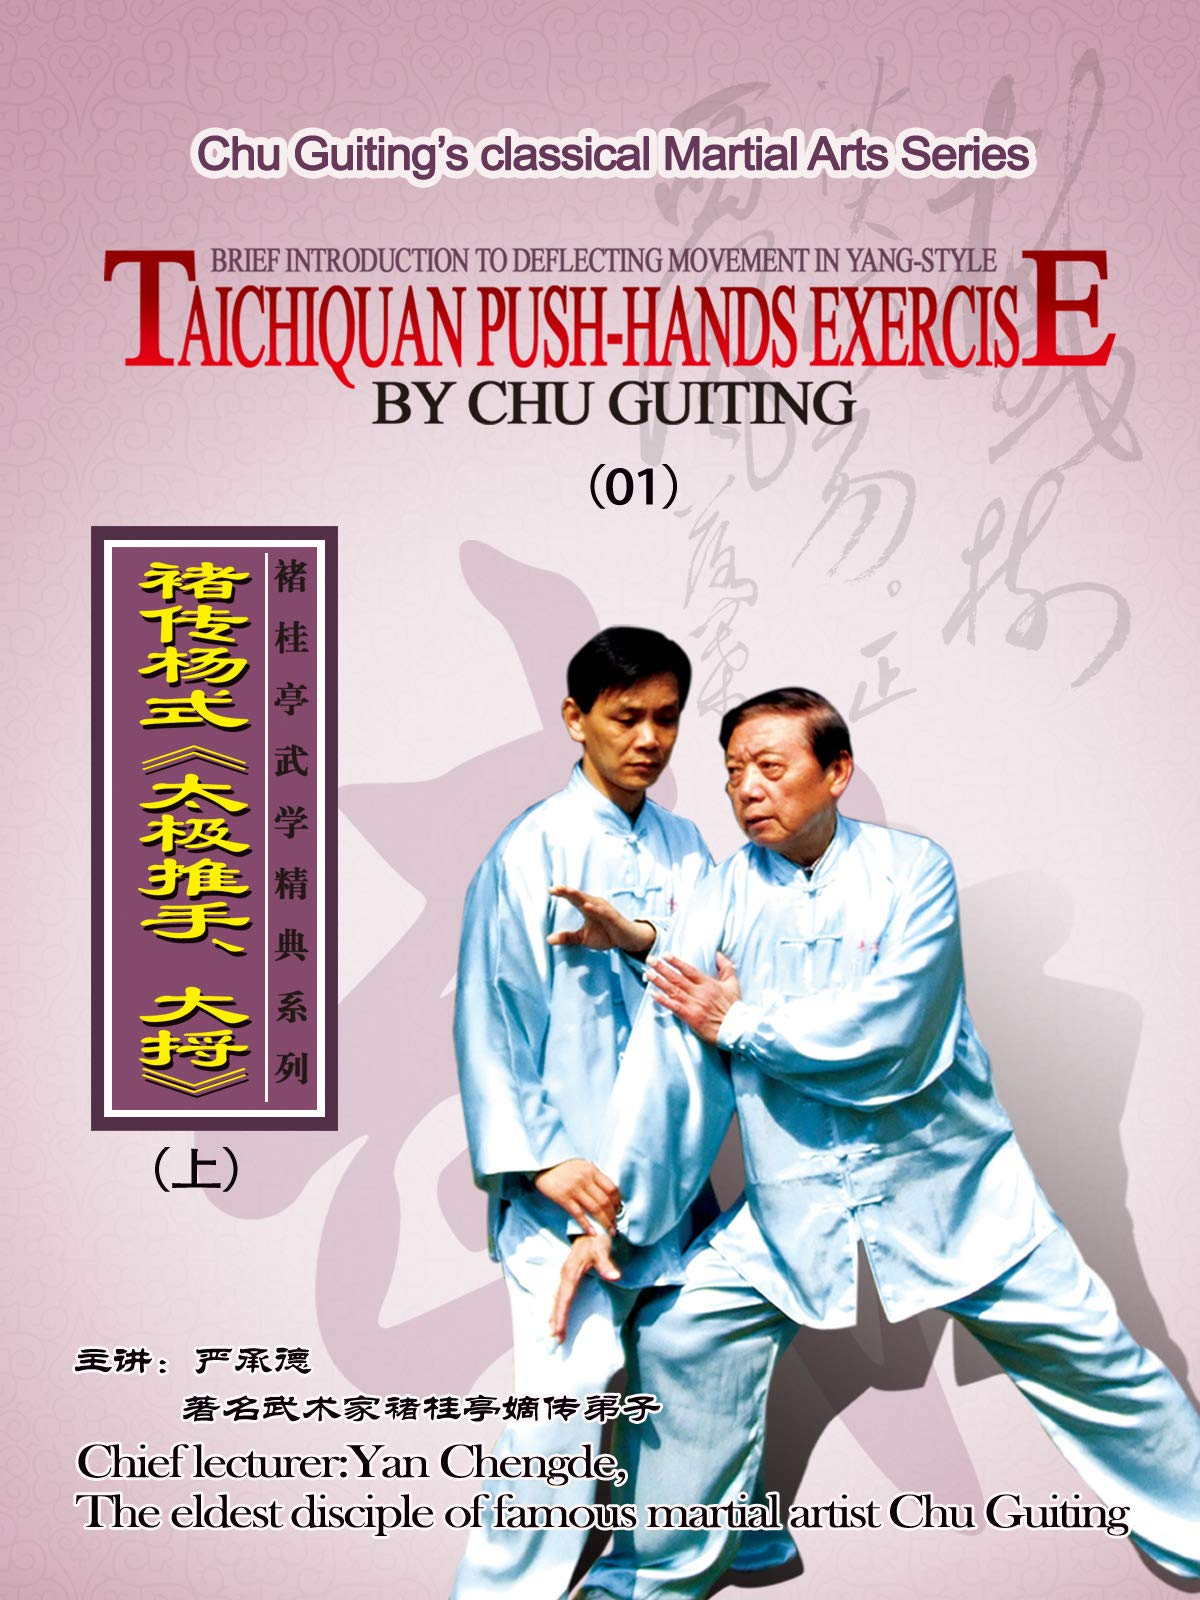 Chu Guiting's classical Martial Arts Series-Brief Introduction to Yang-Taichiquan Push-hands Exercis by Chu Guiting 01